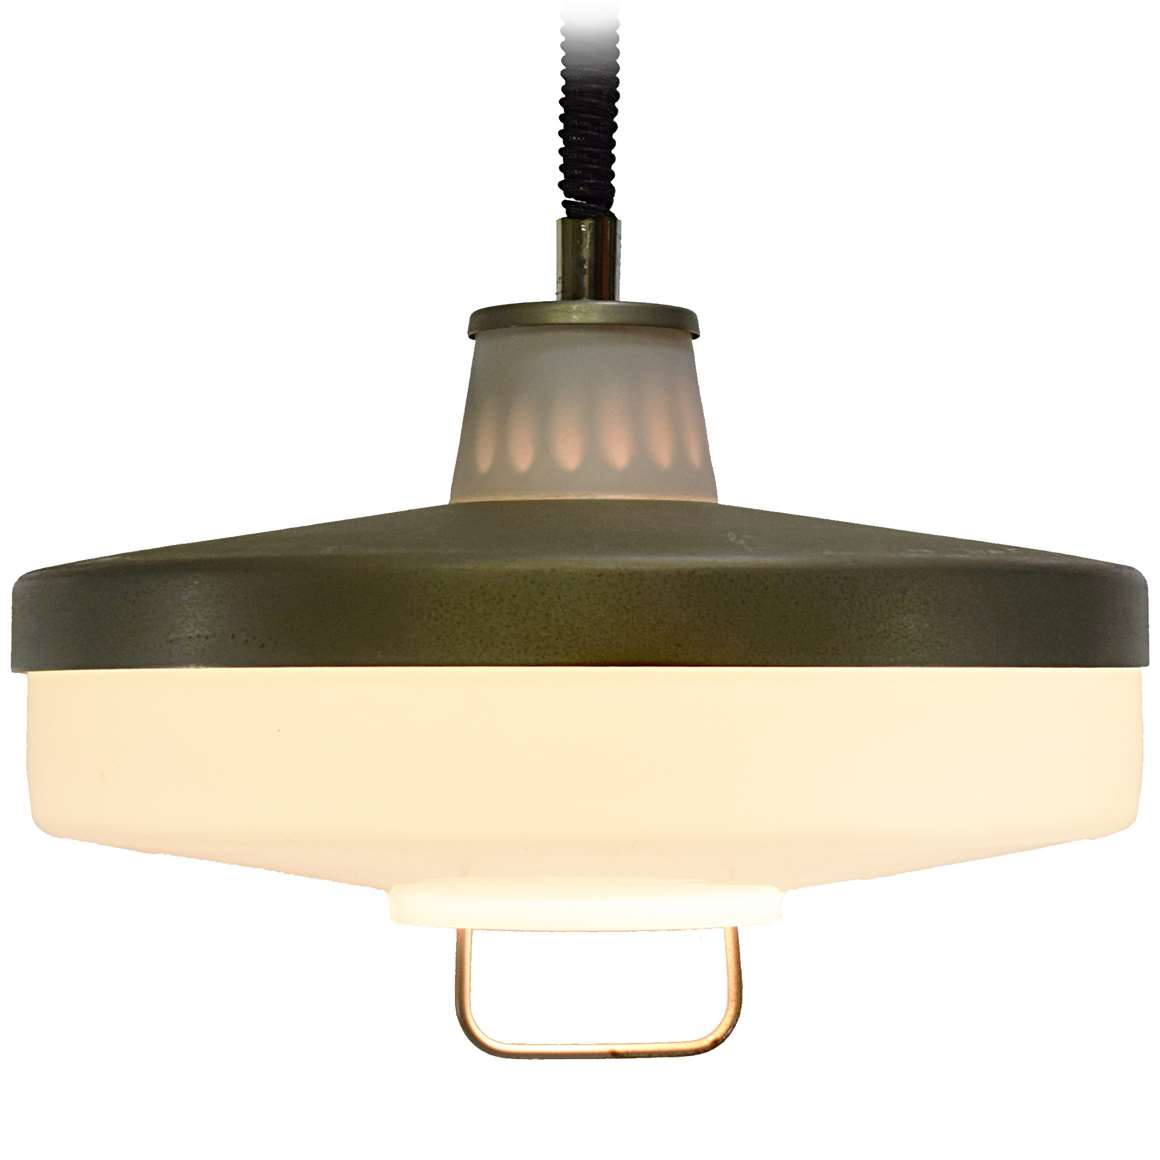 Swedish Rise & Fall Pendant Light